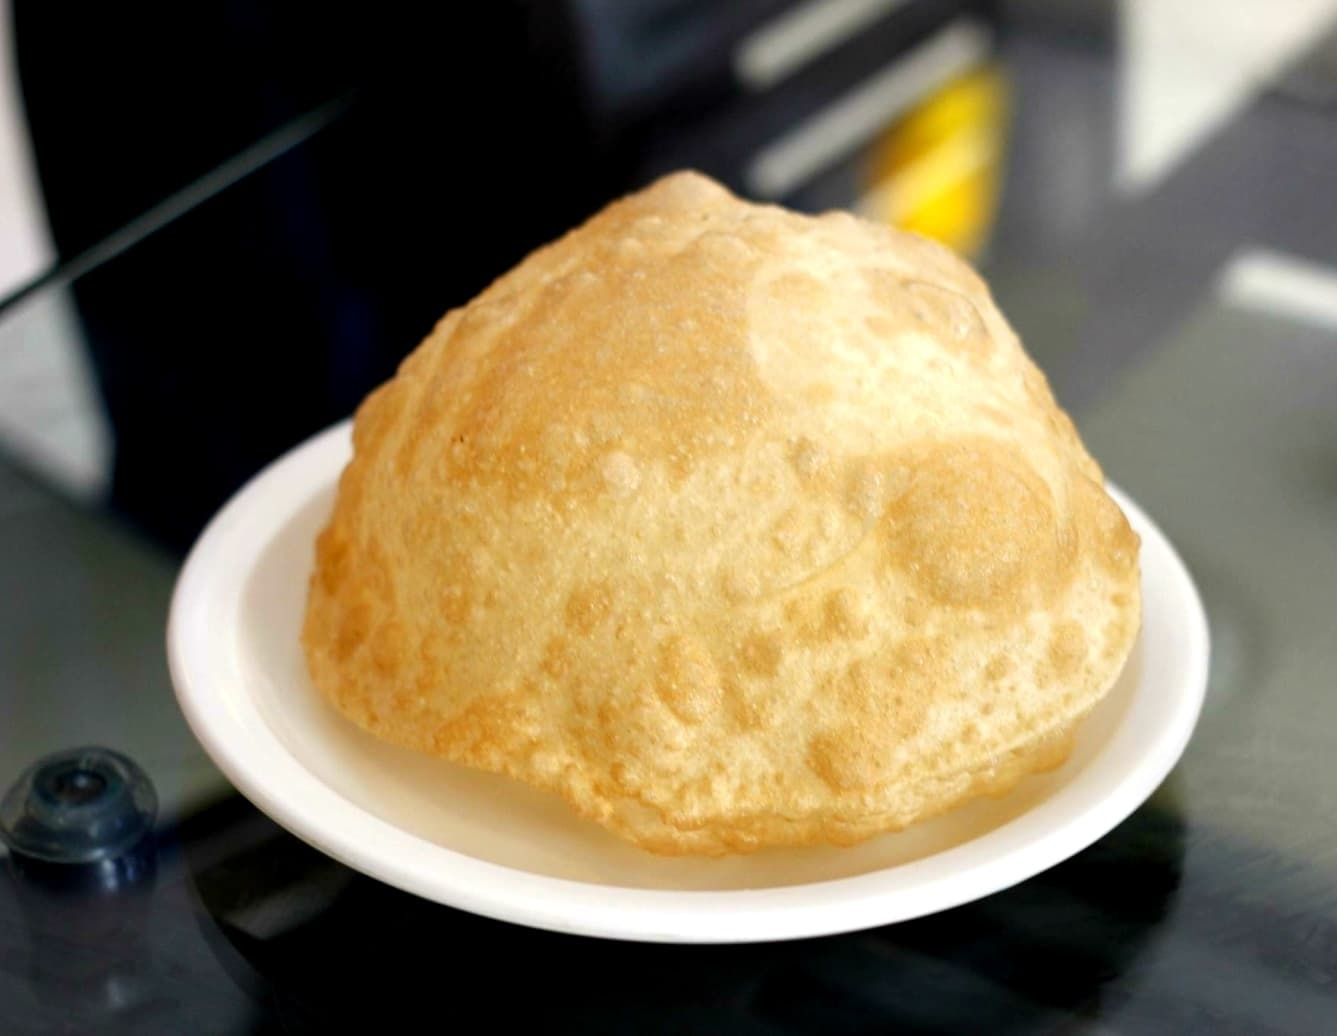 One couldn't help but pop this puri bubble the minute it arrived on the table